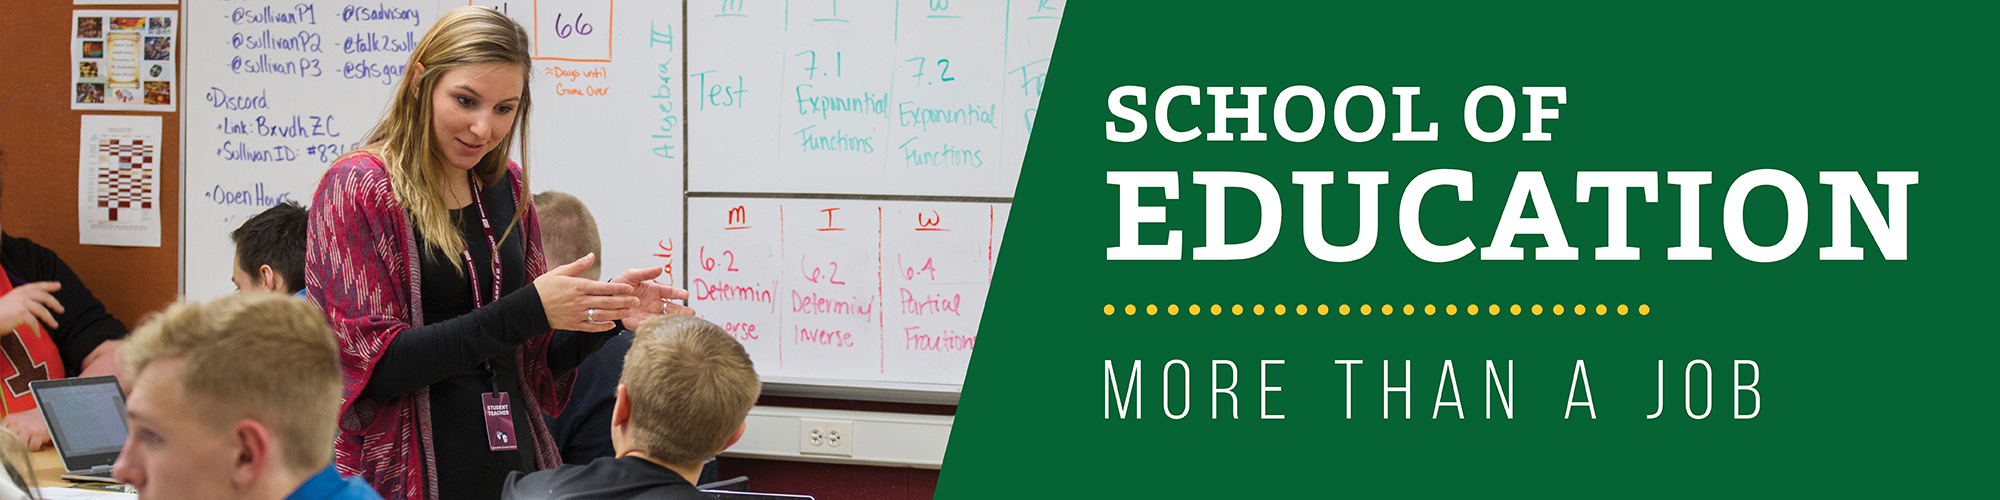 School of Education at BHSU